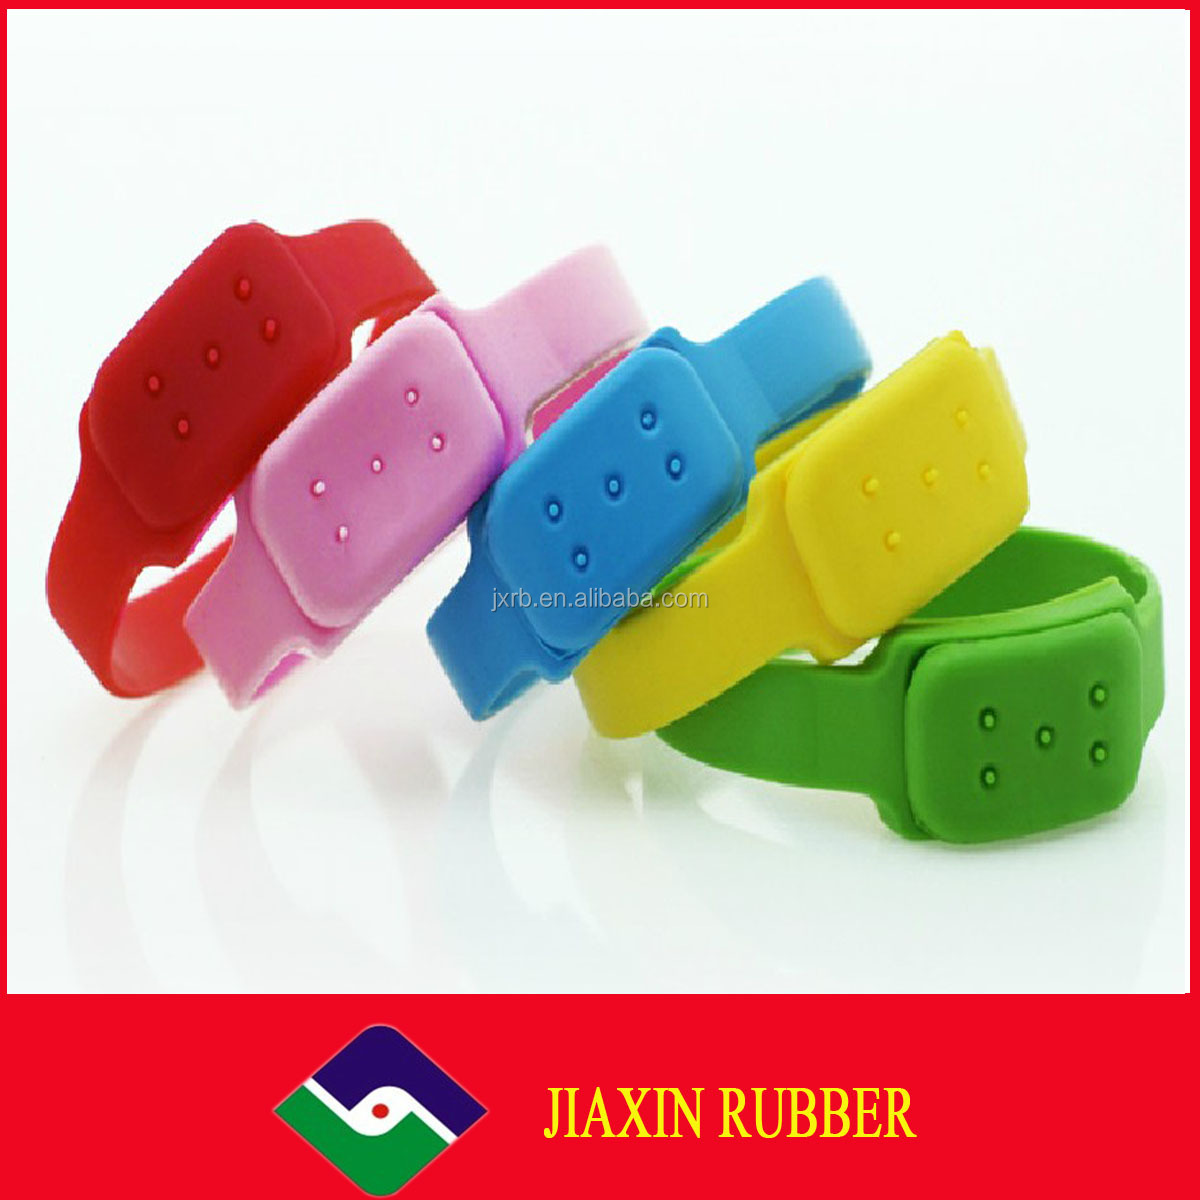 2014 silicone Mosquito repellent bracelet for children/adult